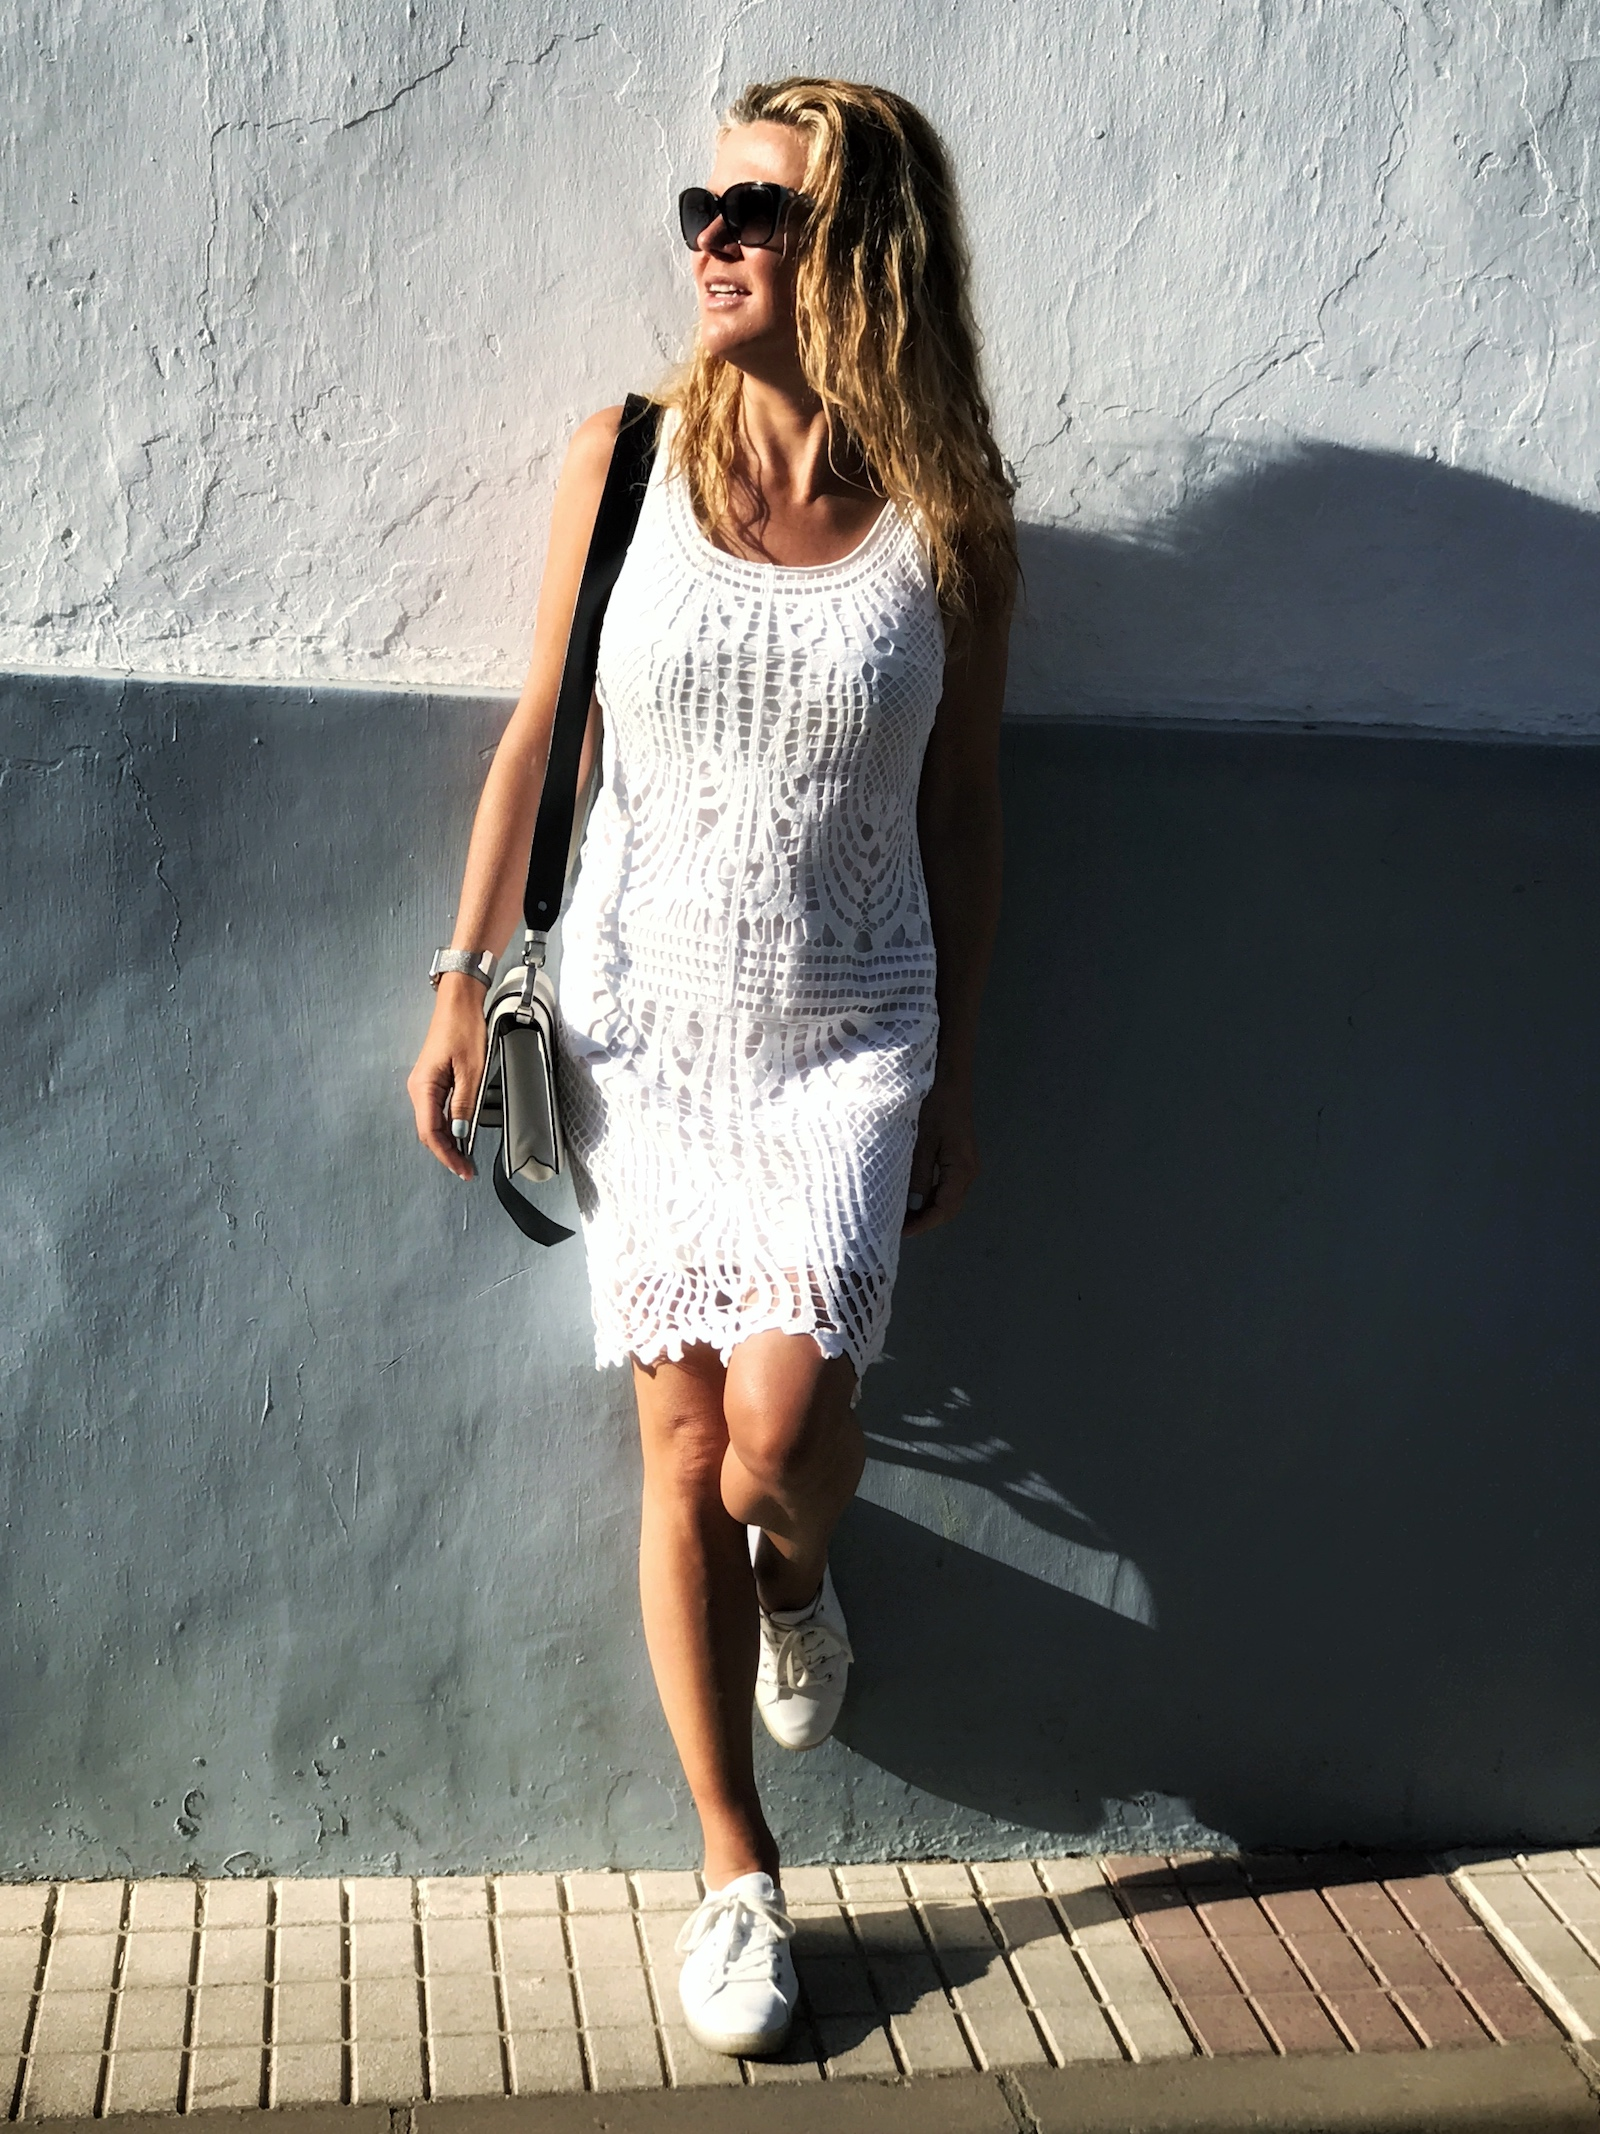 A Broad In London in white trainers, Spain.jpg